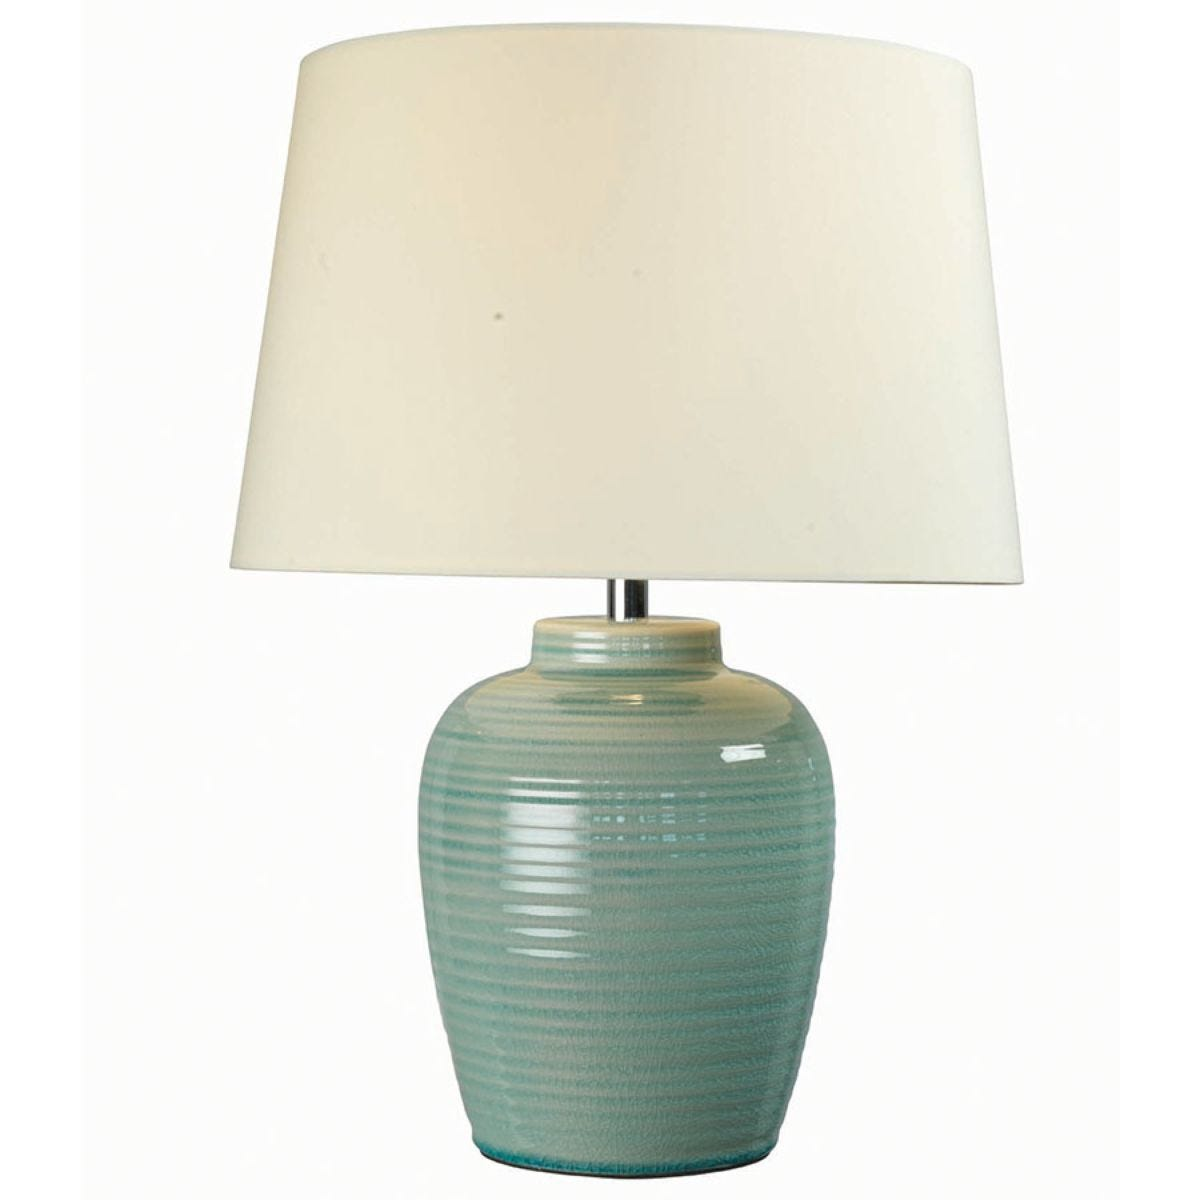 Village At Home Lume Table Lamp - Blue